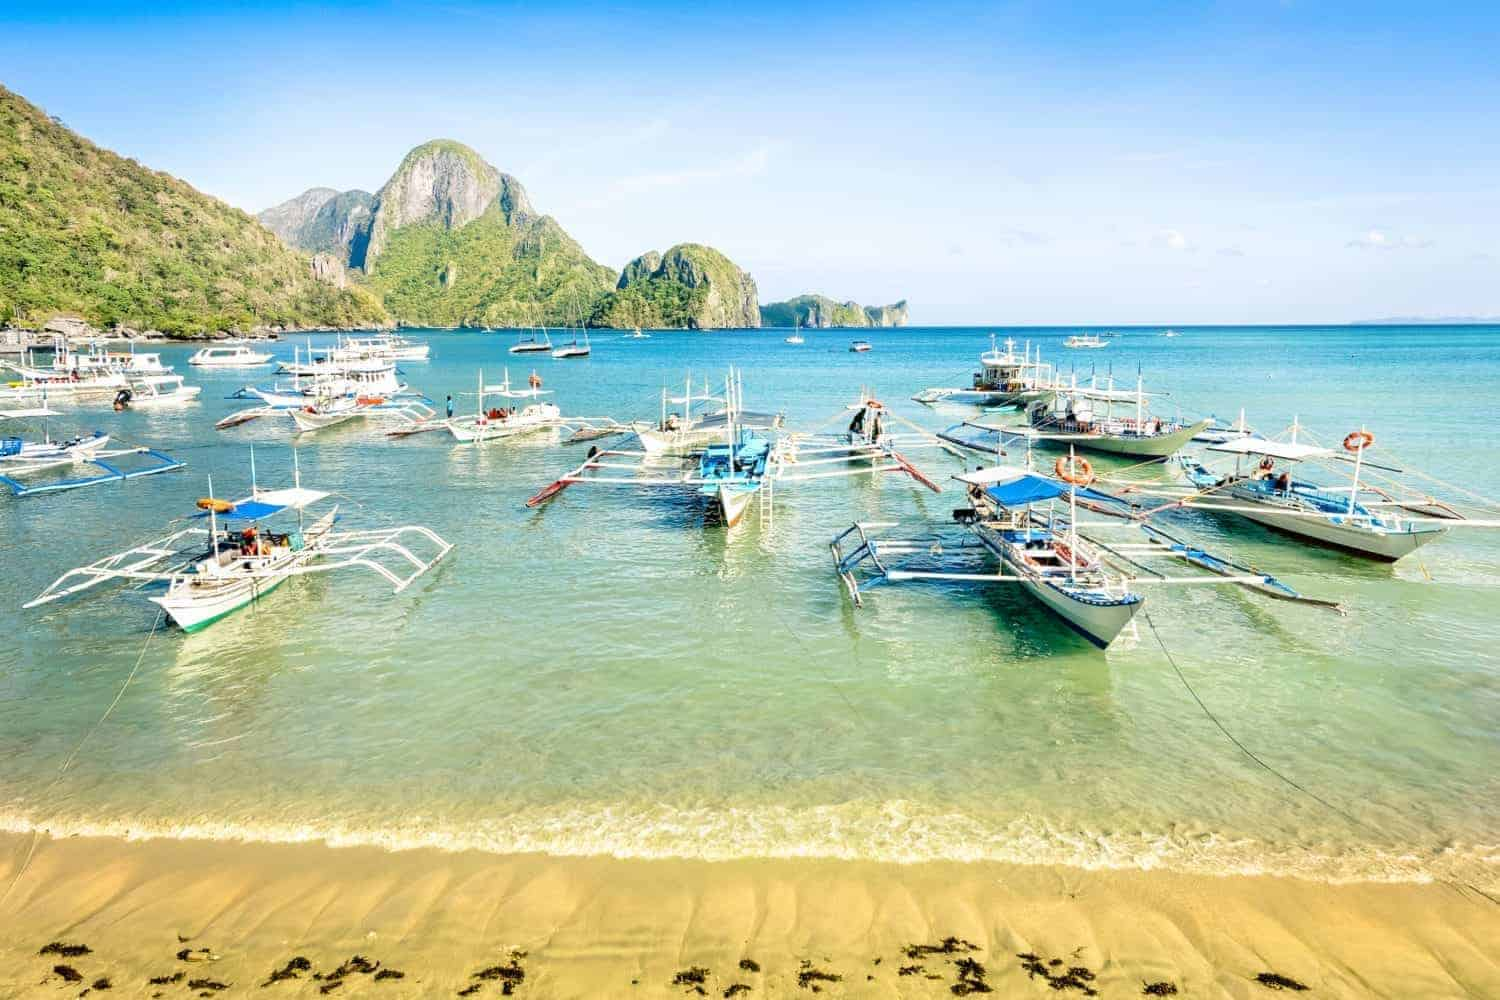 Palawan Front beach with longtail boats in El Nido